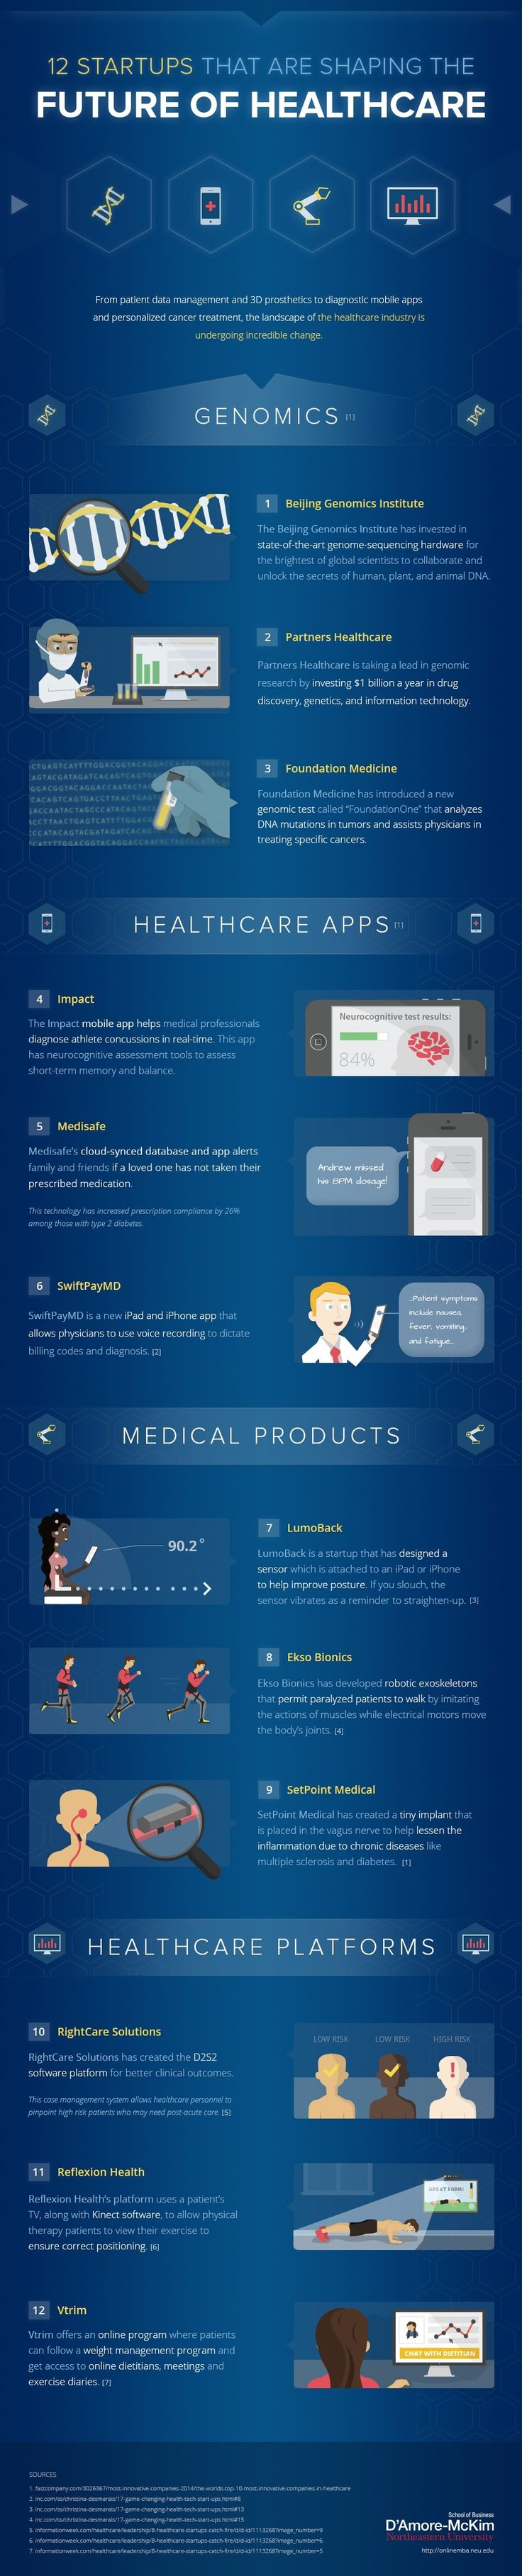 12 Companies Shaping the Future of Digital Health Infographic #digitalhealth #infographic #healthcare